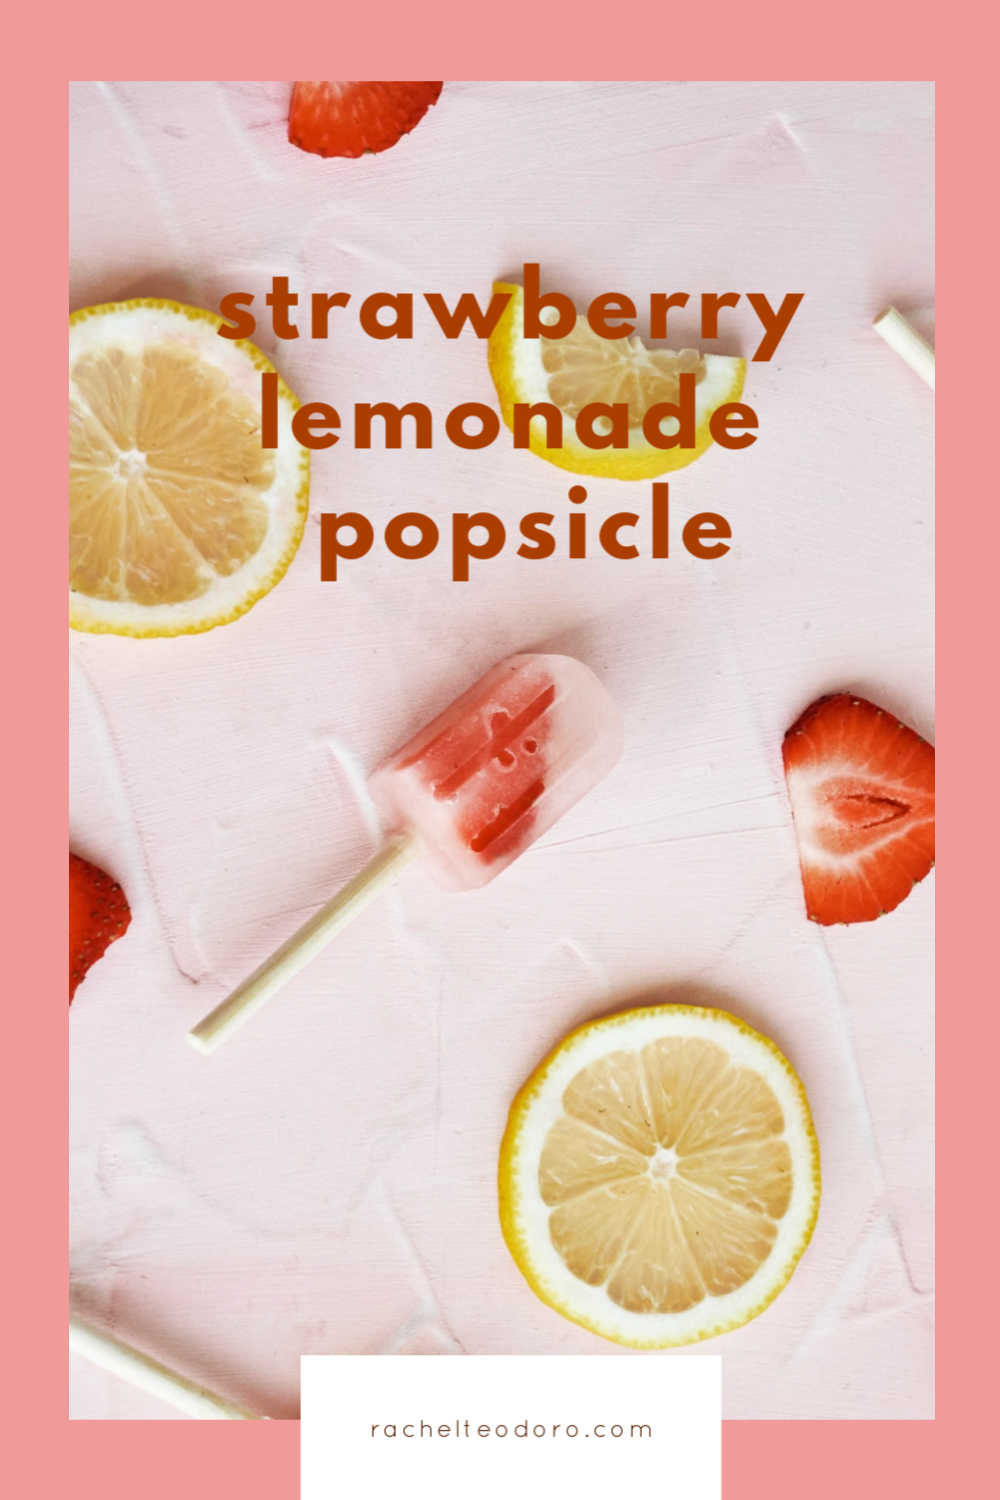 tips and tricks to make homemade Popsicle and boozy Popsicle